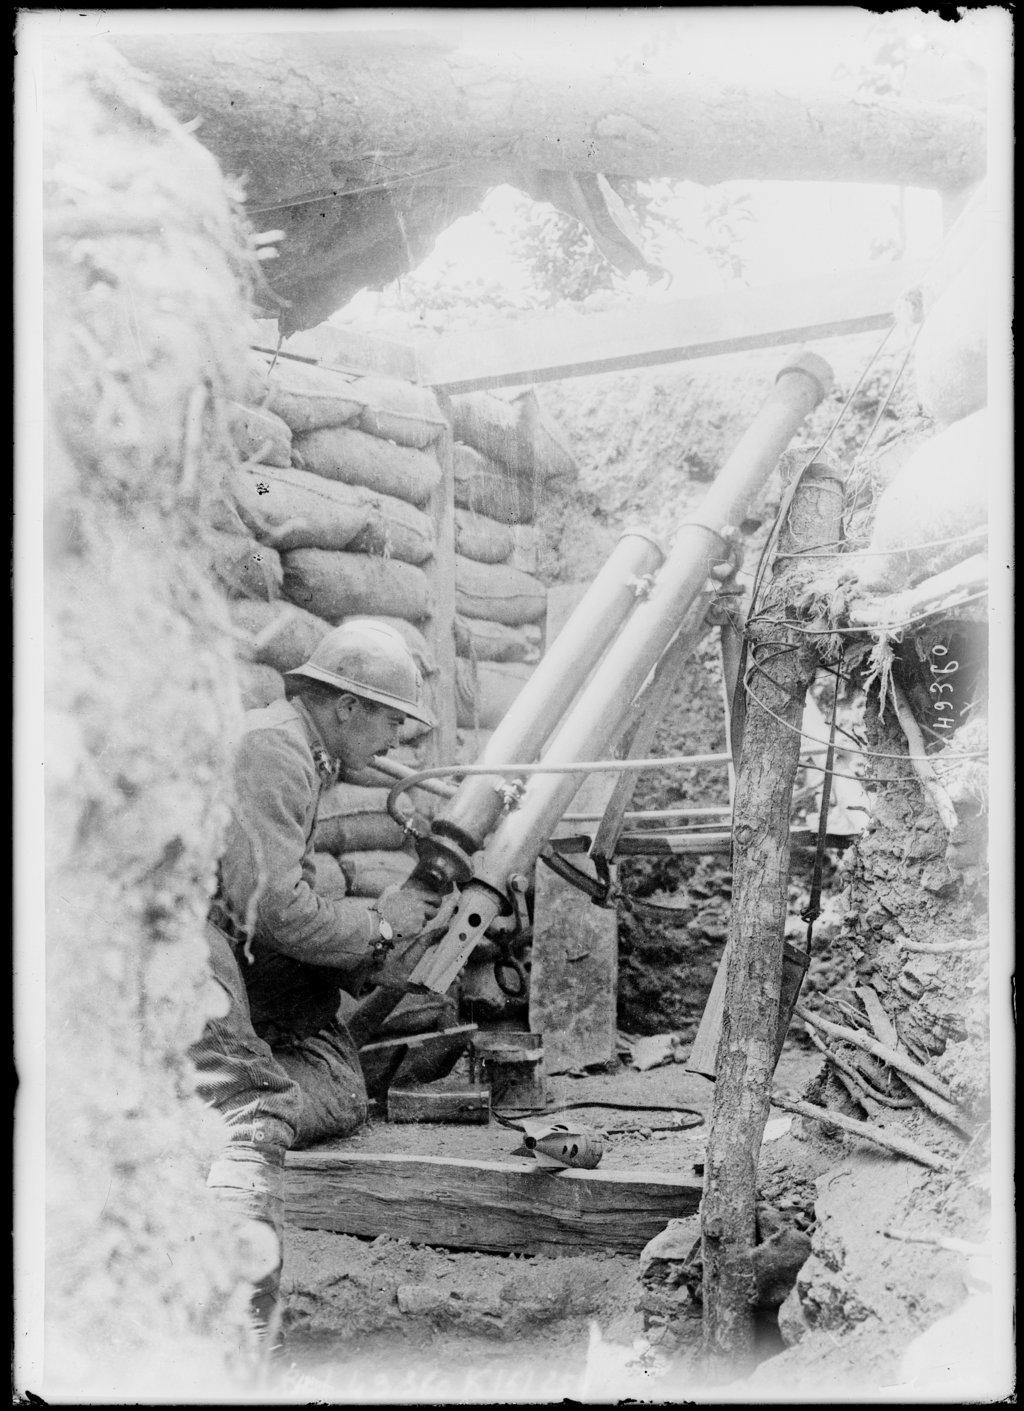 Photograph showing a French soldier in a front line trench, May 1917. He is firing a pneumatic trench mortar, an indirect fire weapon. This weapon was the counterpart of the German Minenwerfer, a short-range anti-trench weapon.